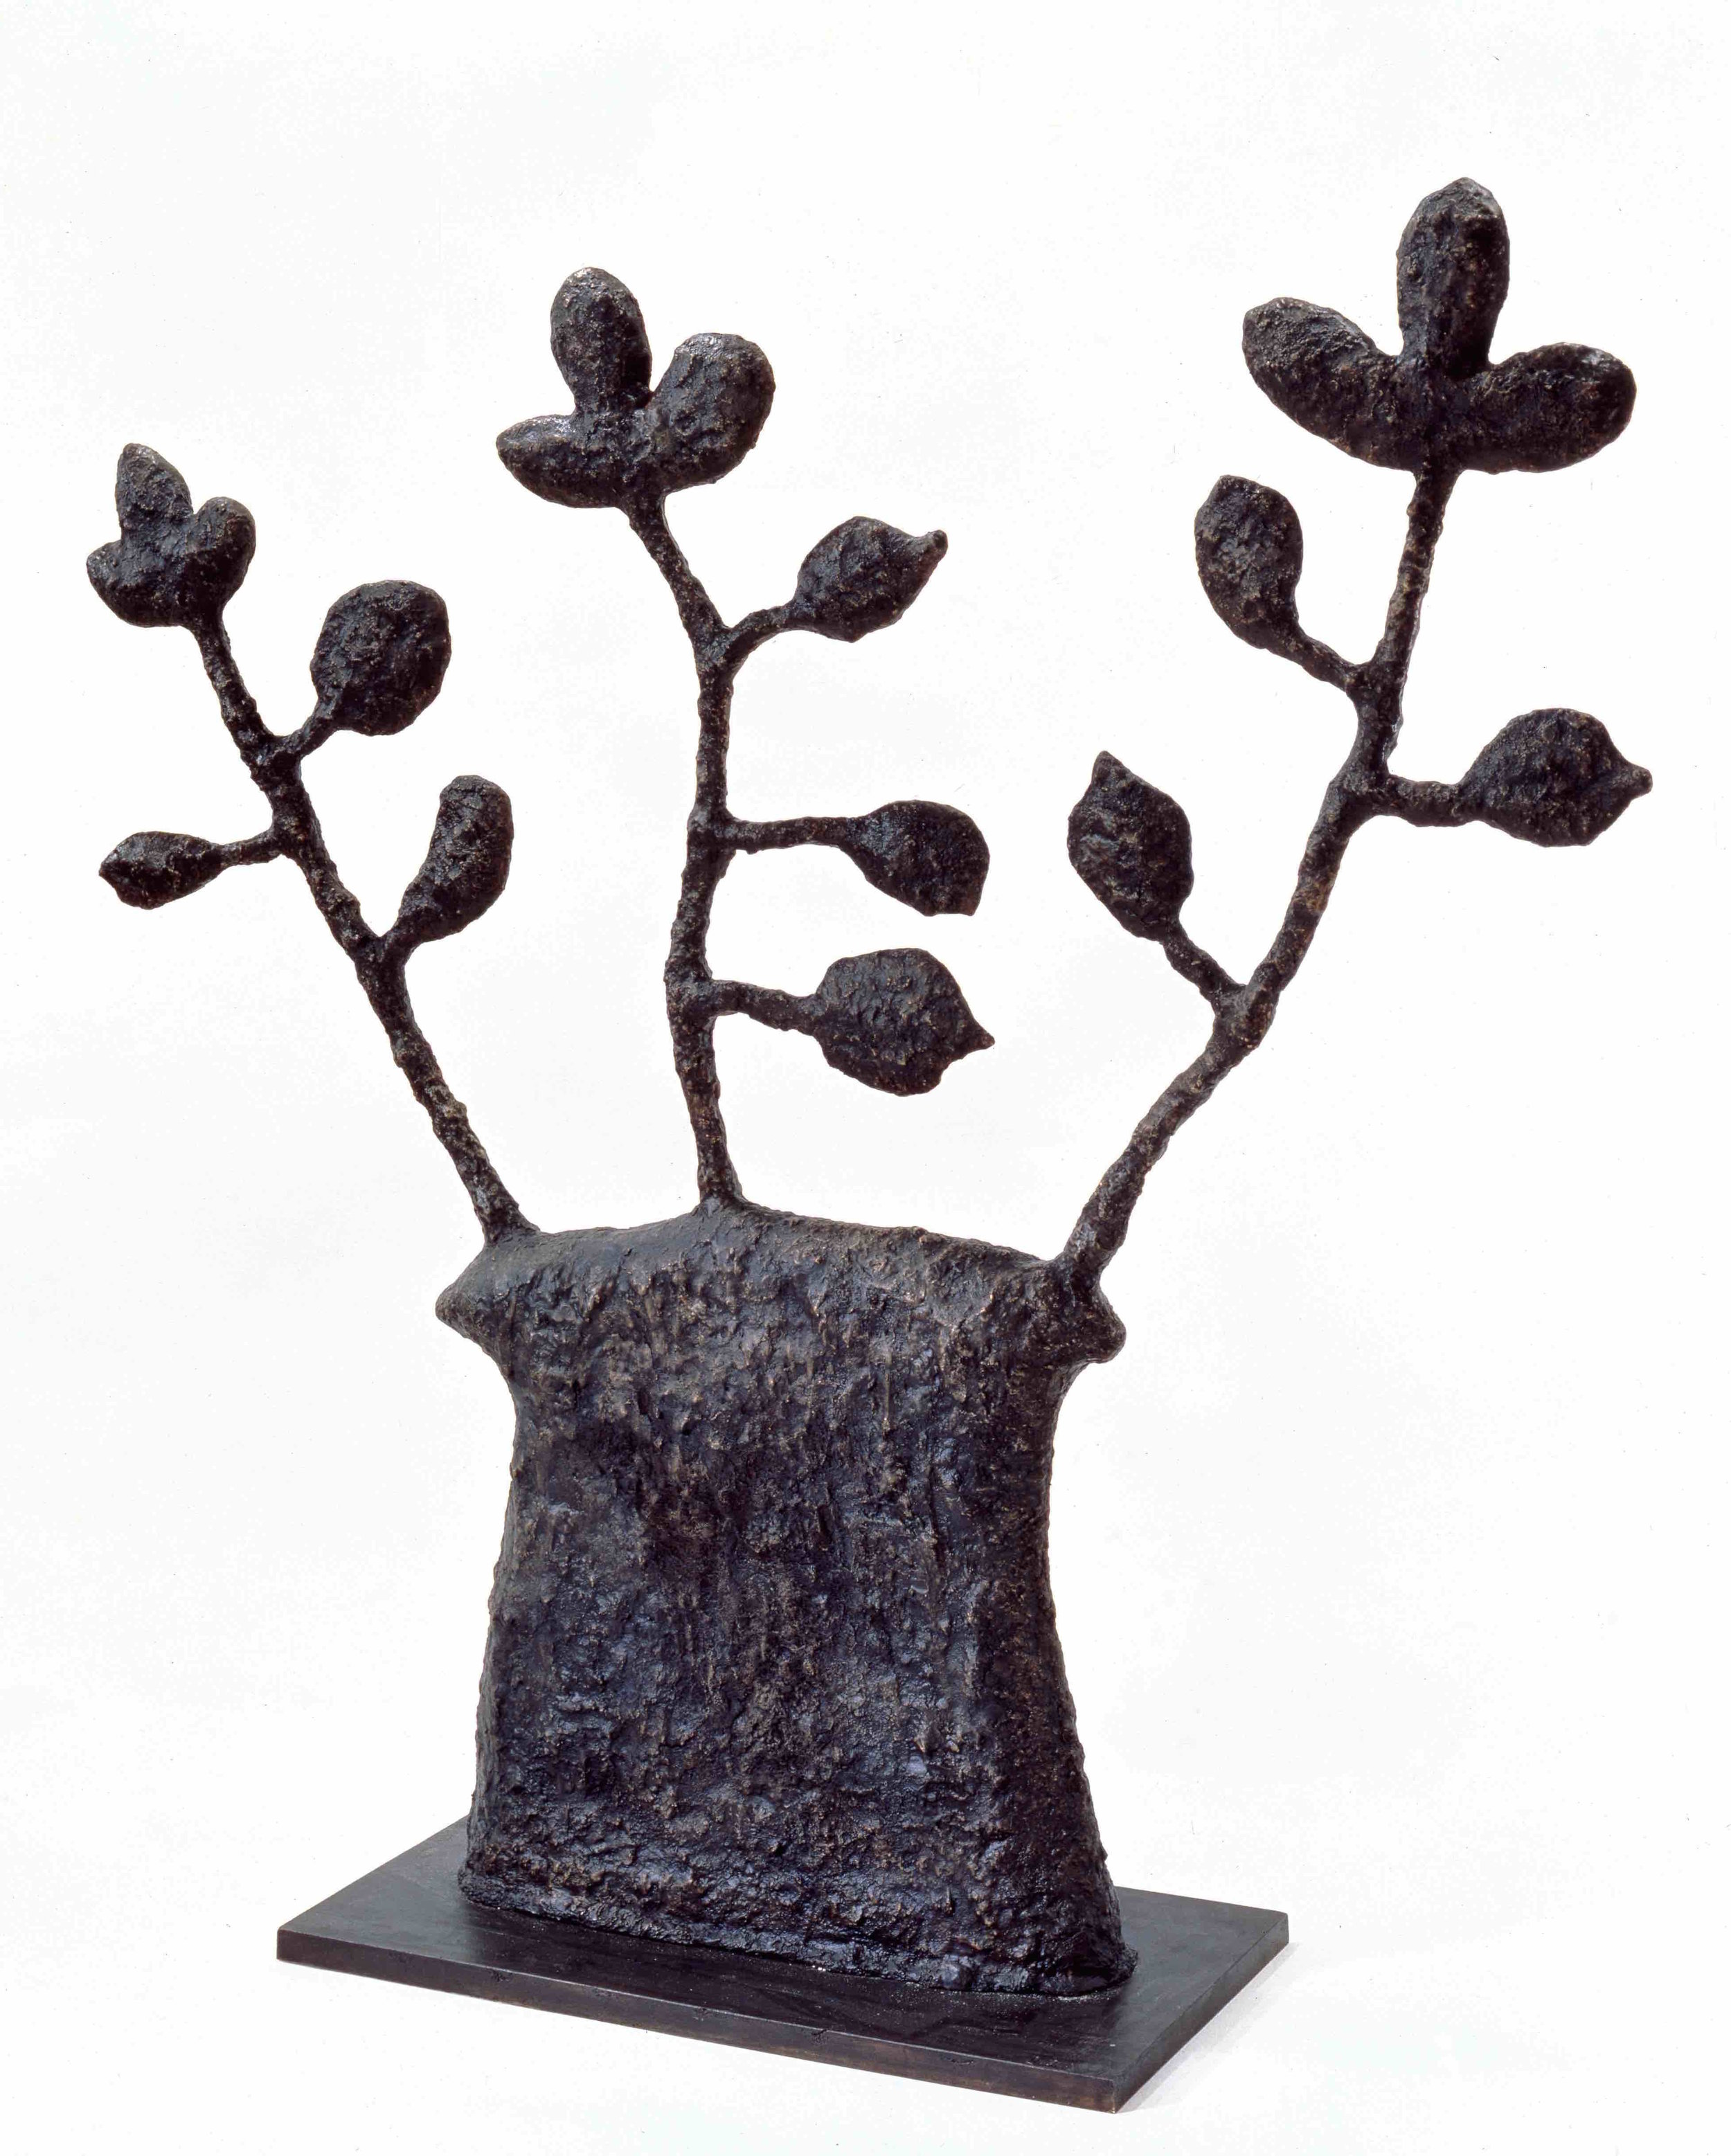 Donald Baechler   Untitled (Plant #1)   2003  cast bronze  59 x 57 x 19.7 in / 150 x 145 x 50 cm  Edition of 5 + 2 APs